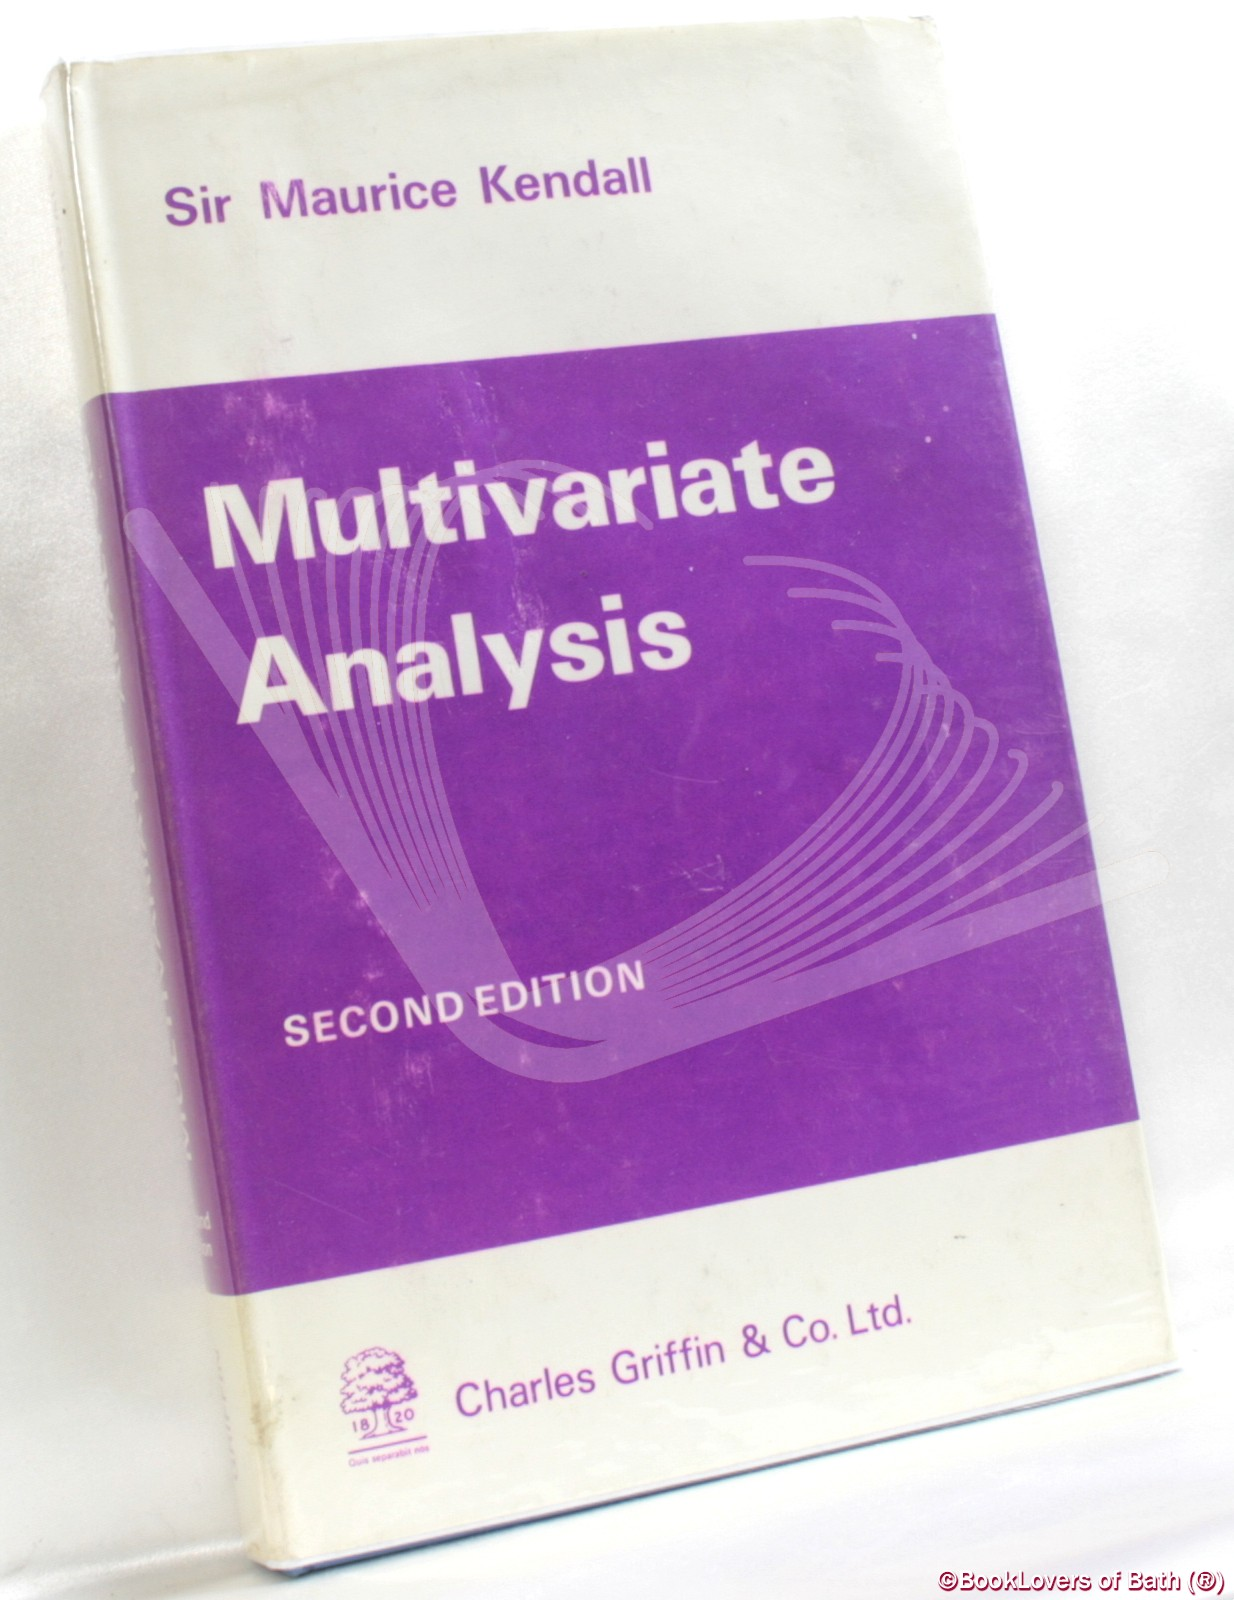 Multivariate Analysis - Sir Maurice Kendall